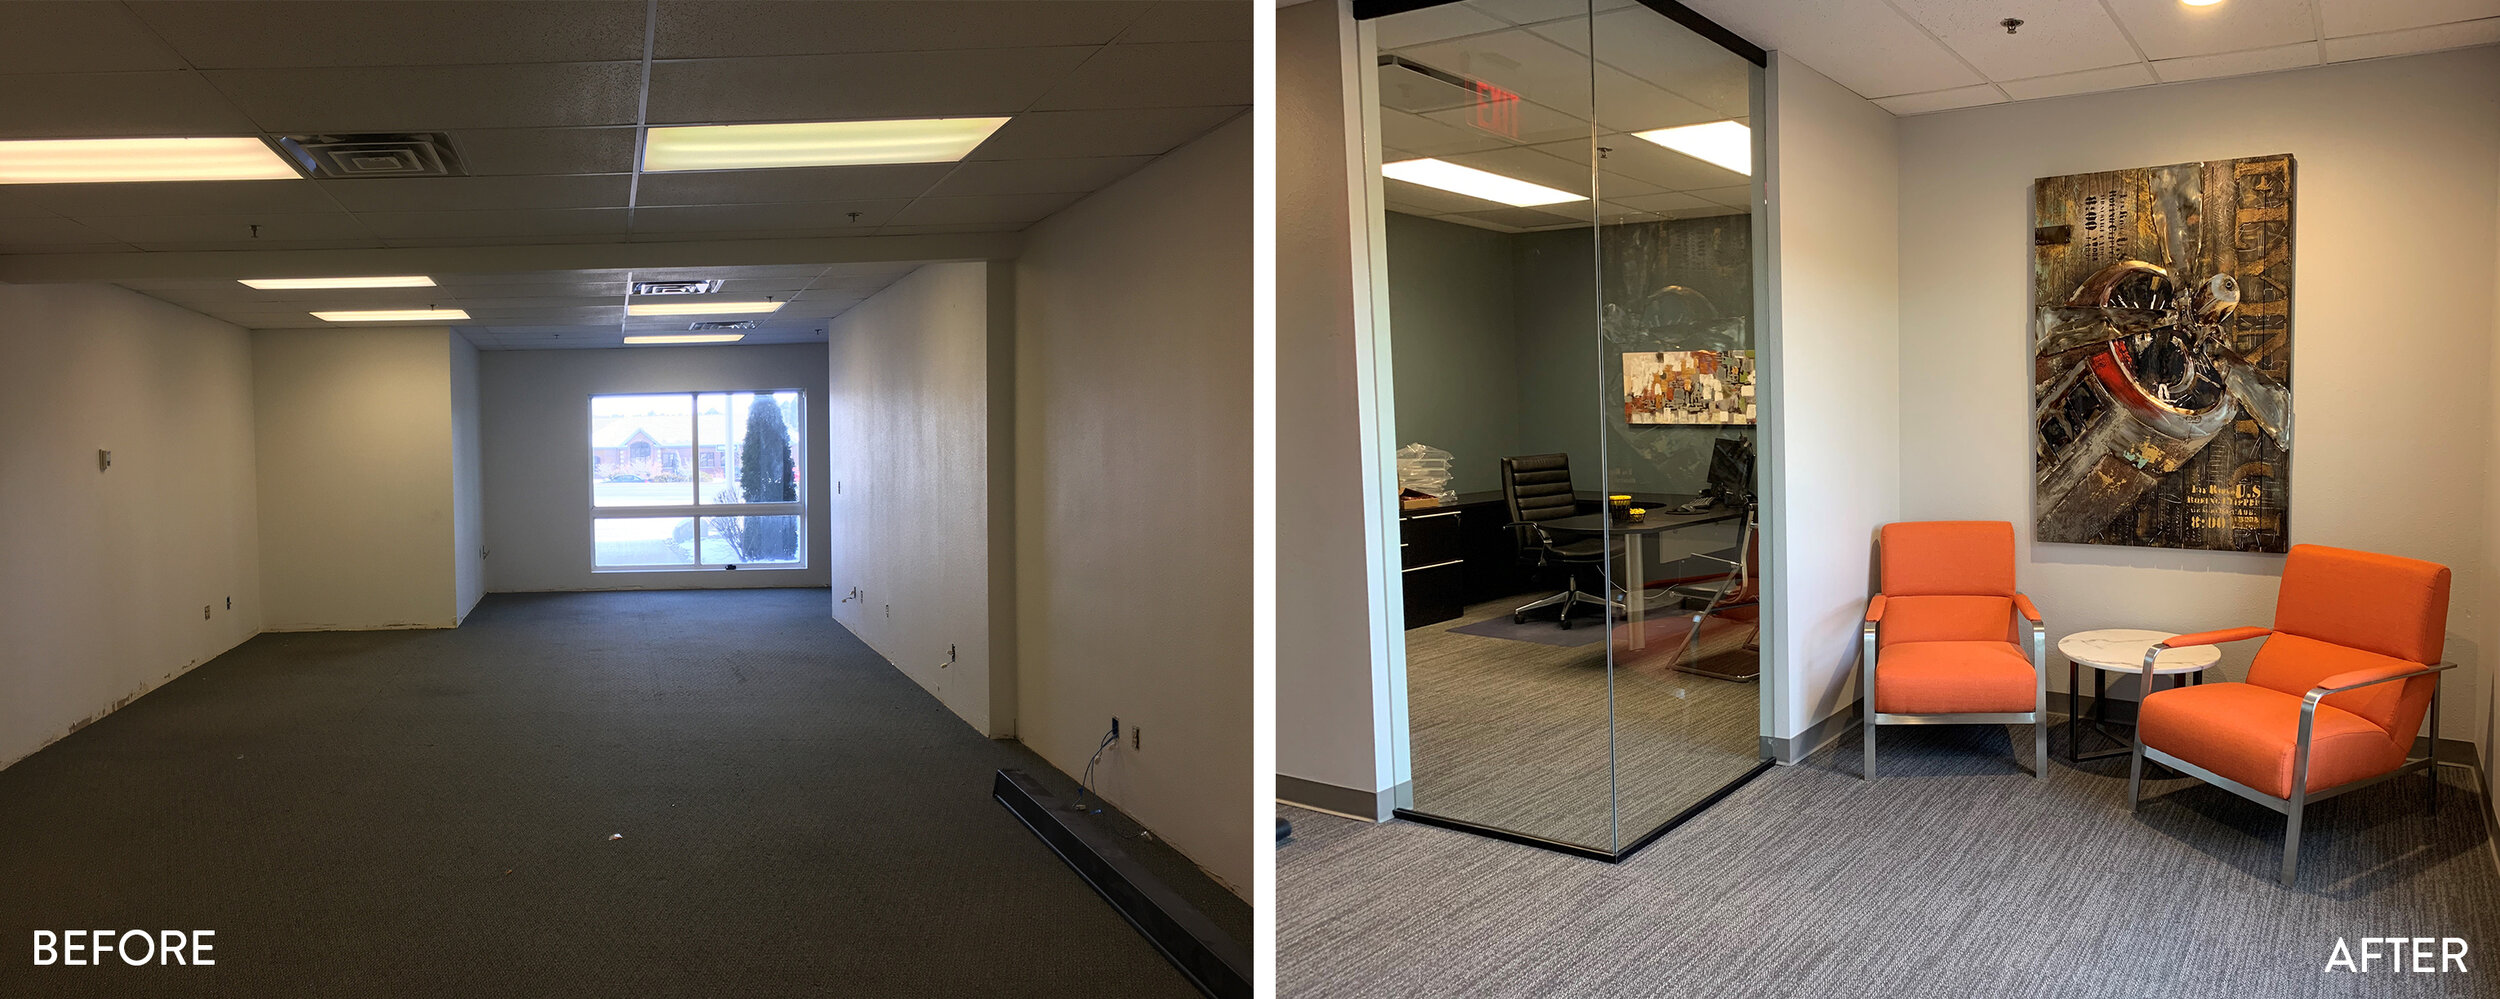 Encol Construction - Before & After - image2.jpg